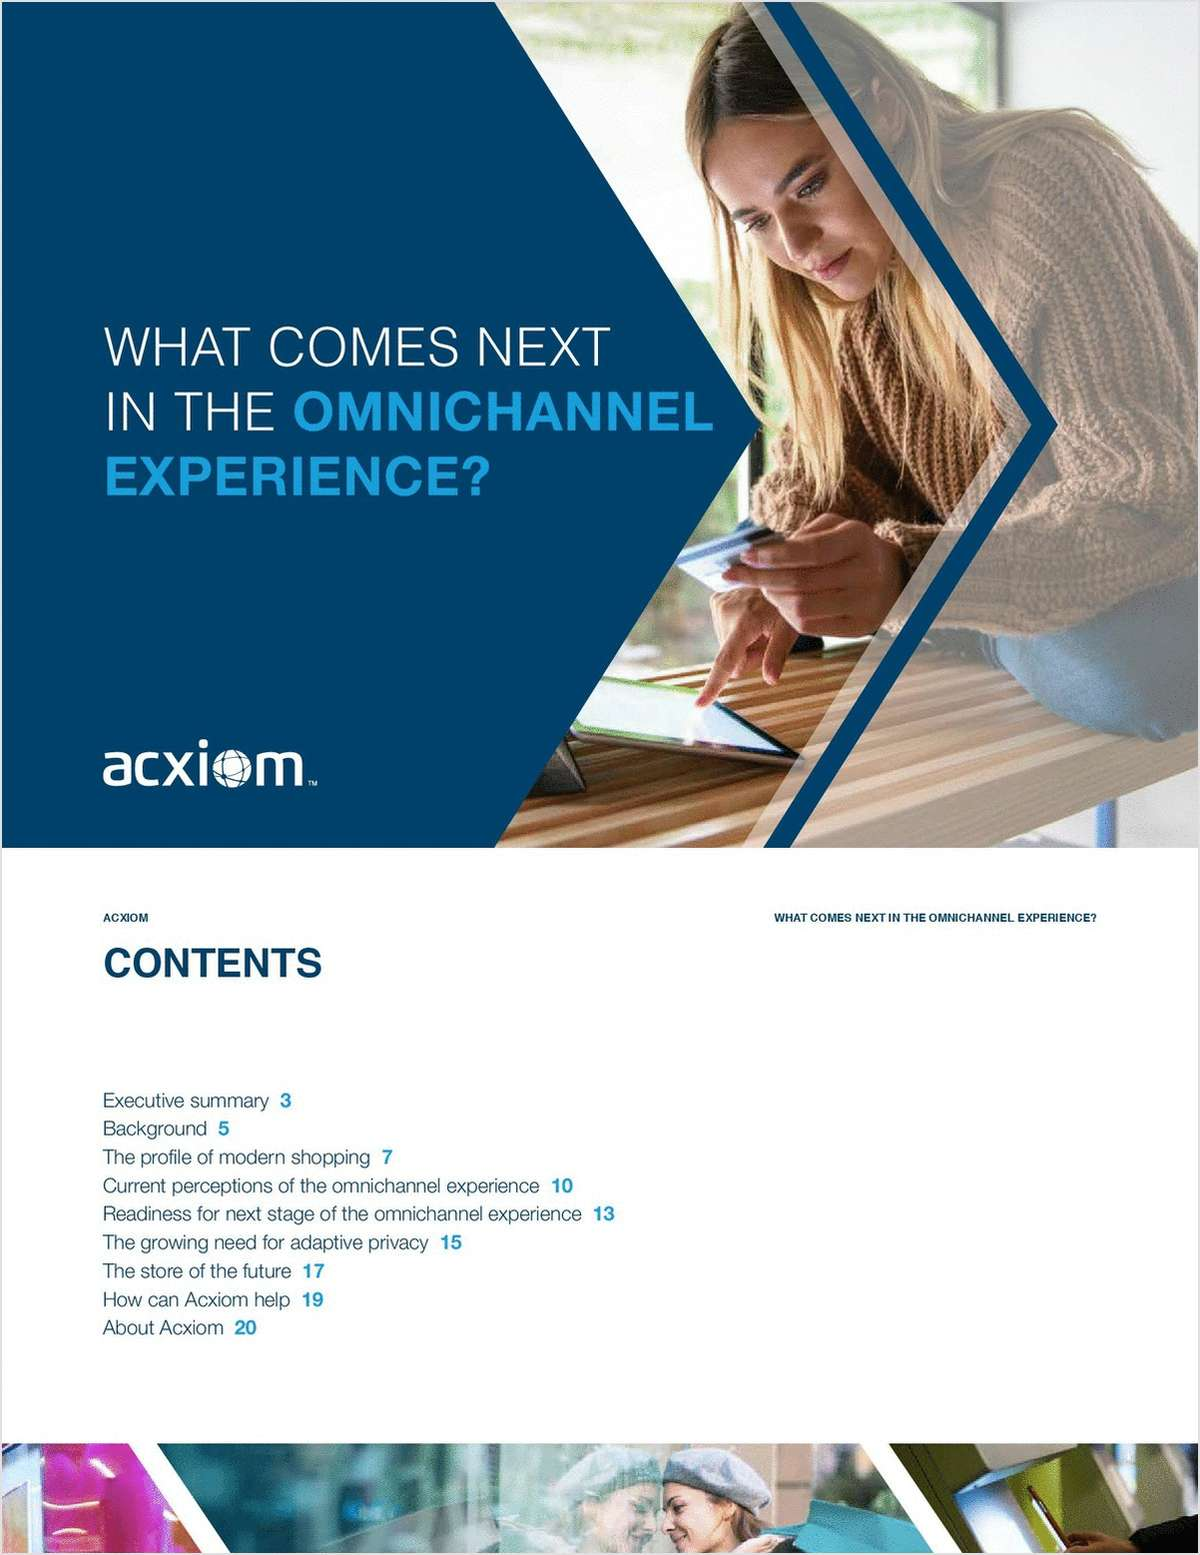 What Comes Next In The Omnichannel Experience?